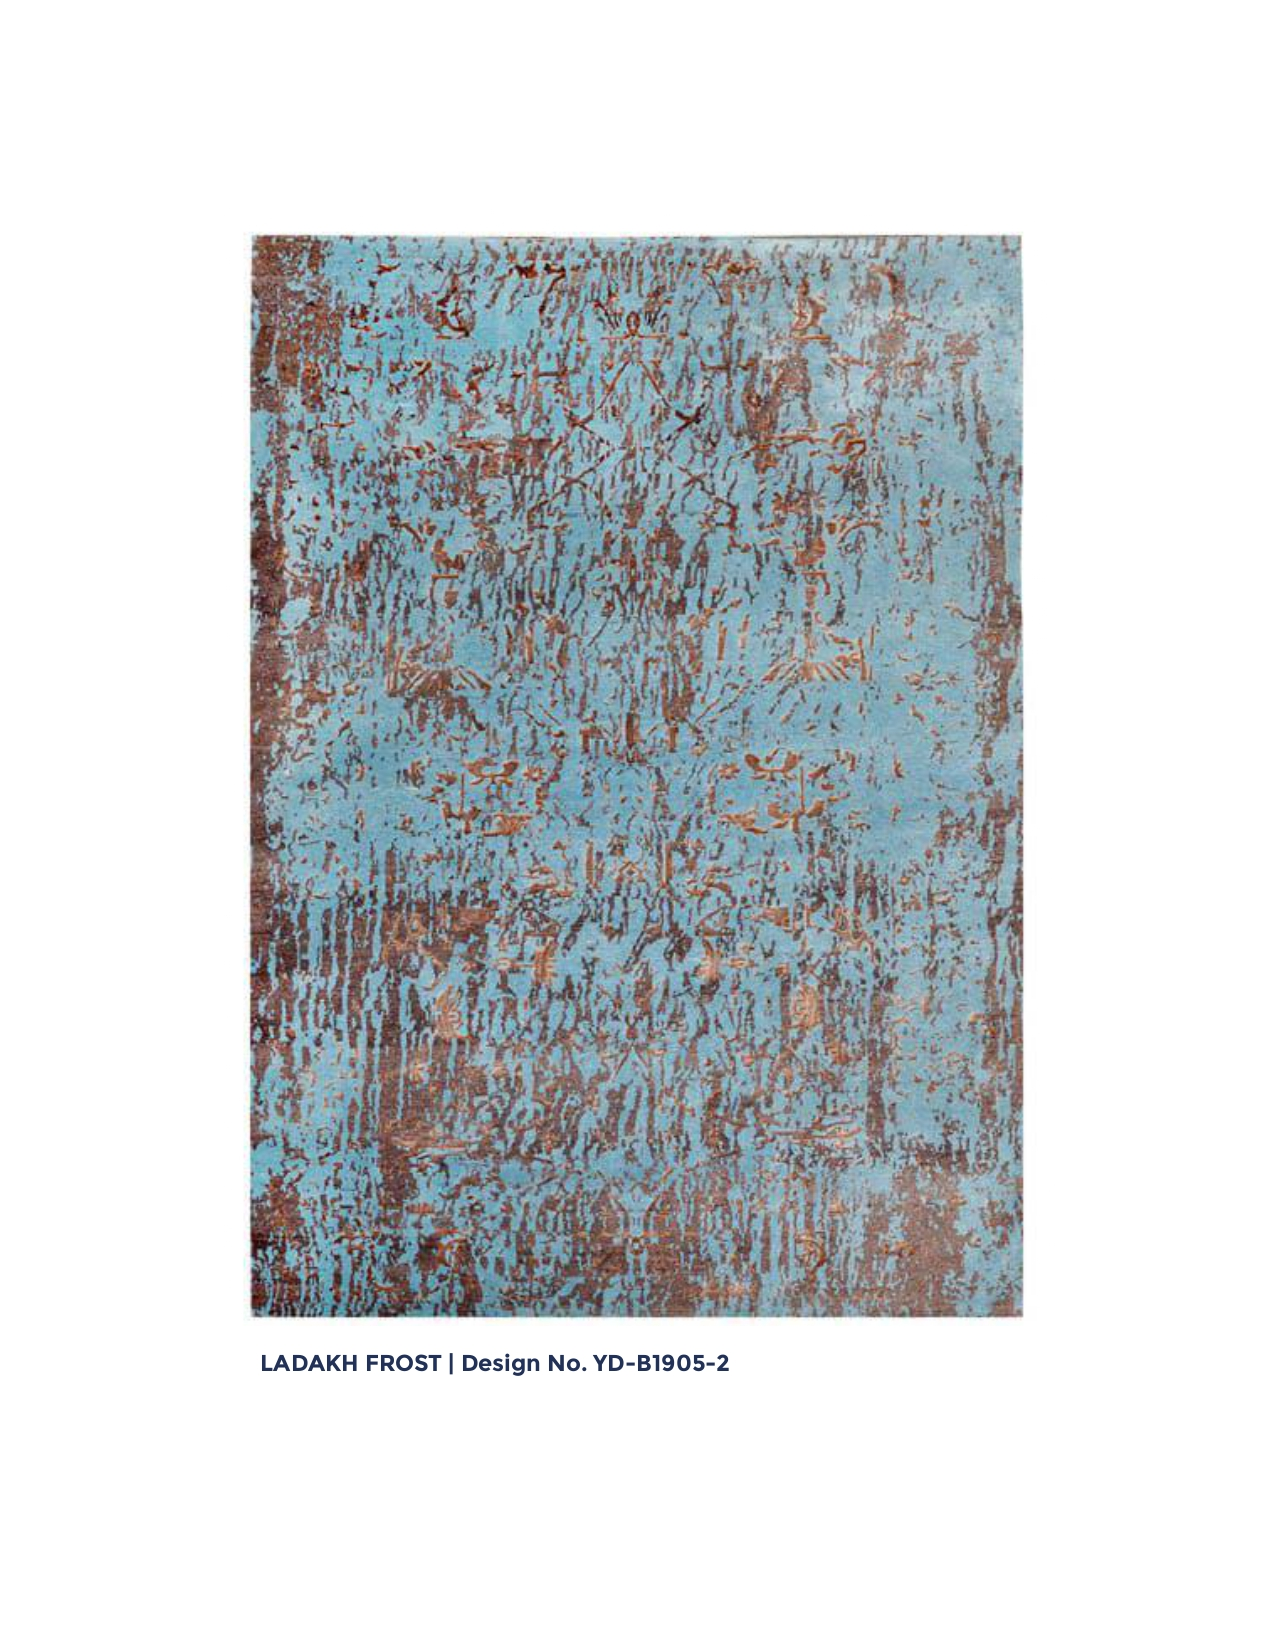 Hand_Knotted_CC_1905_8.jpg